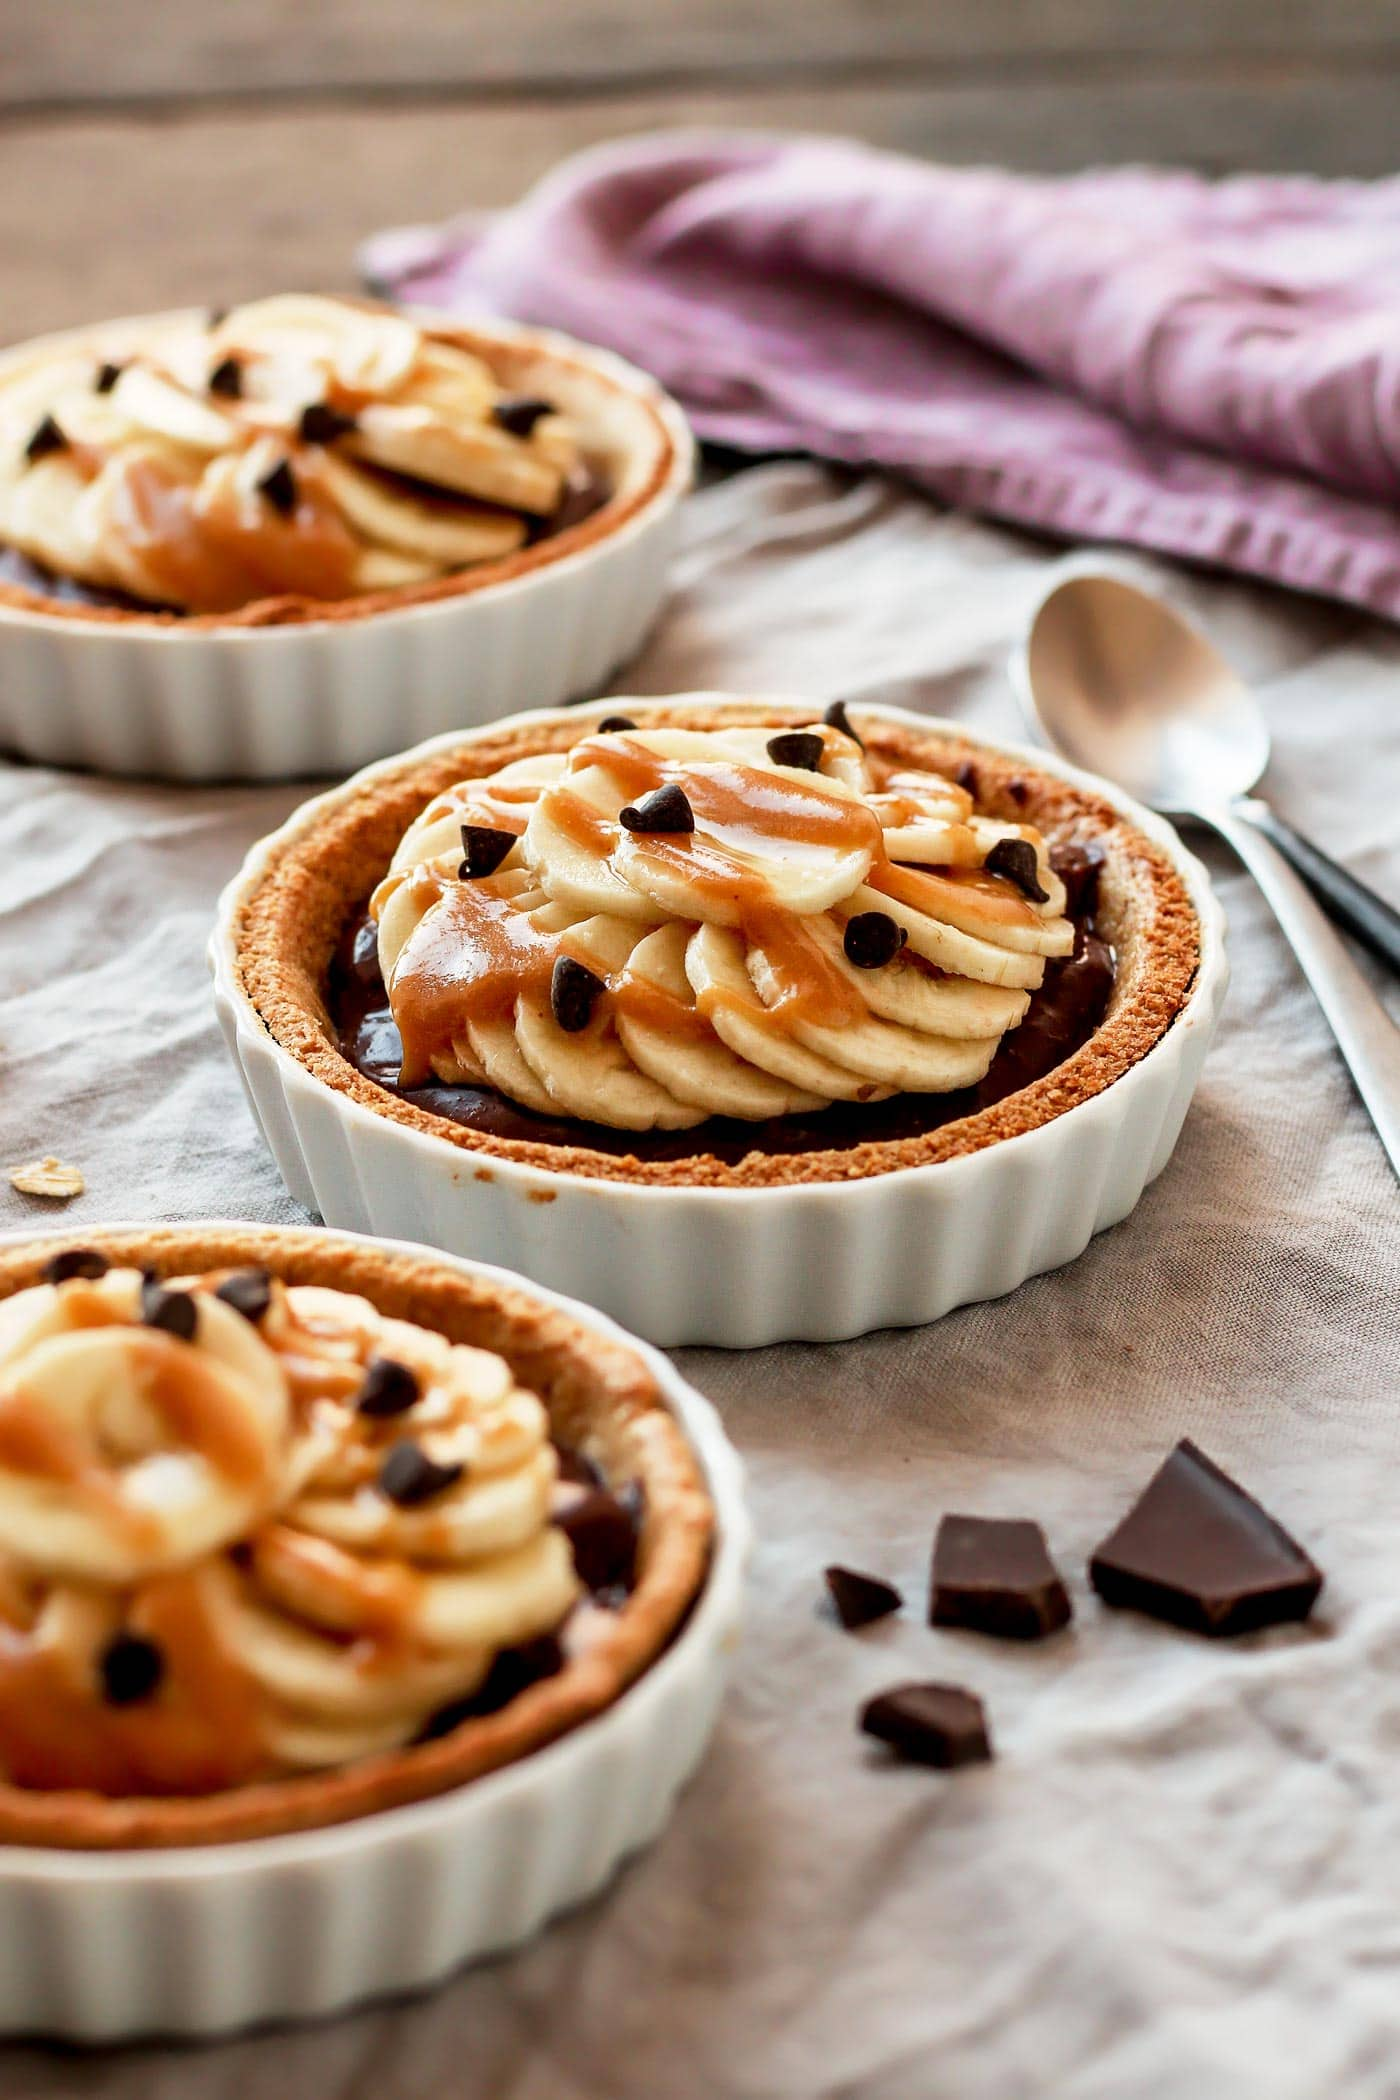 Chocolate Banana Breakfast Tartlets